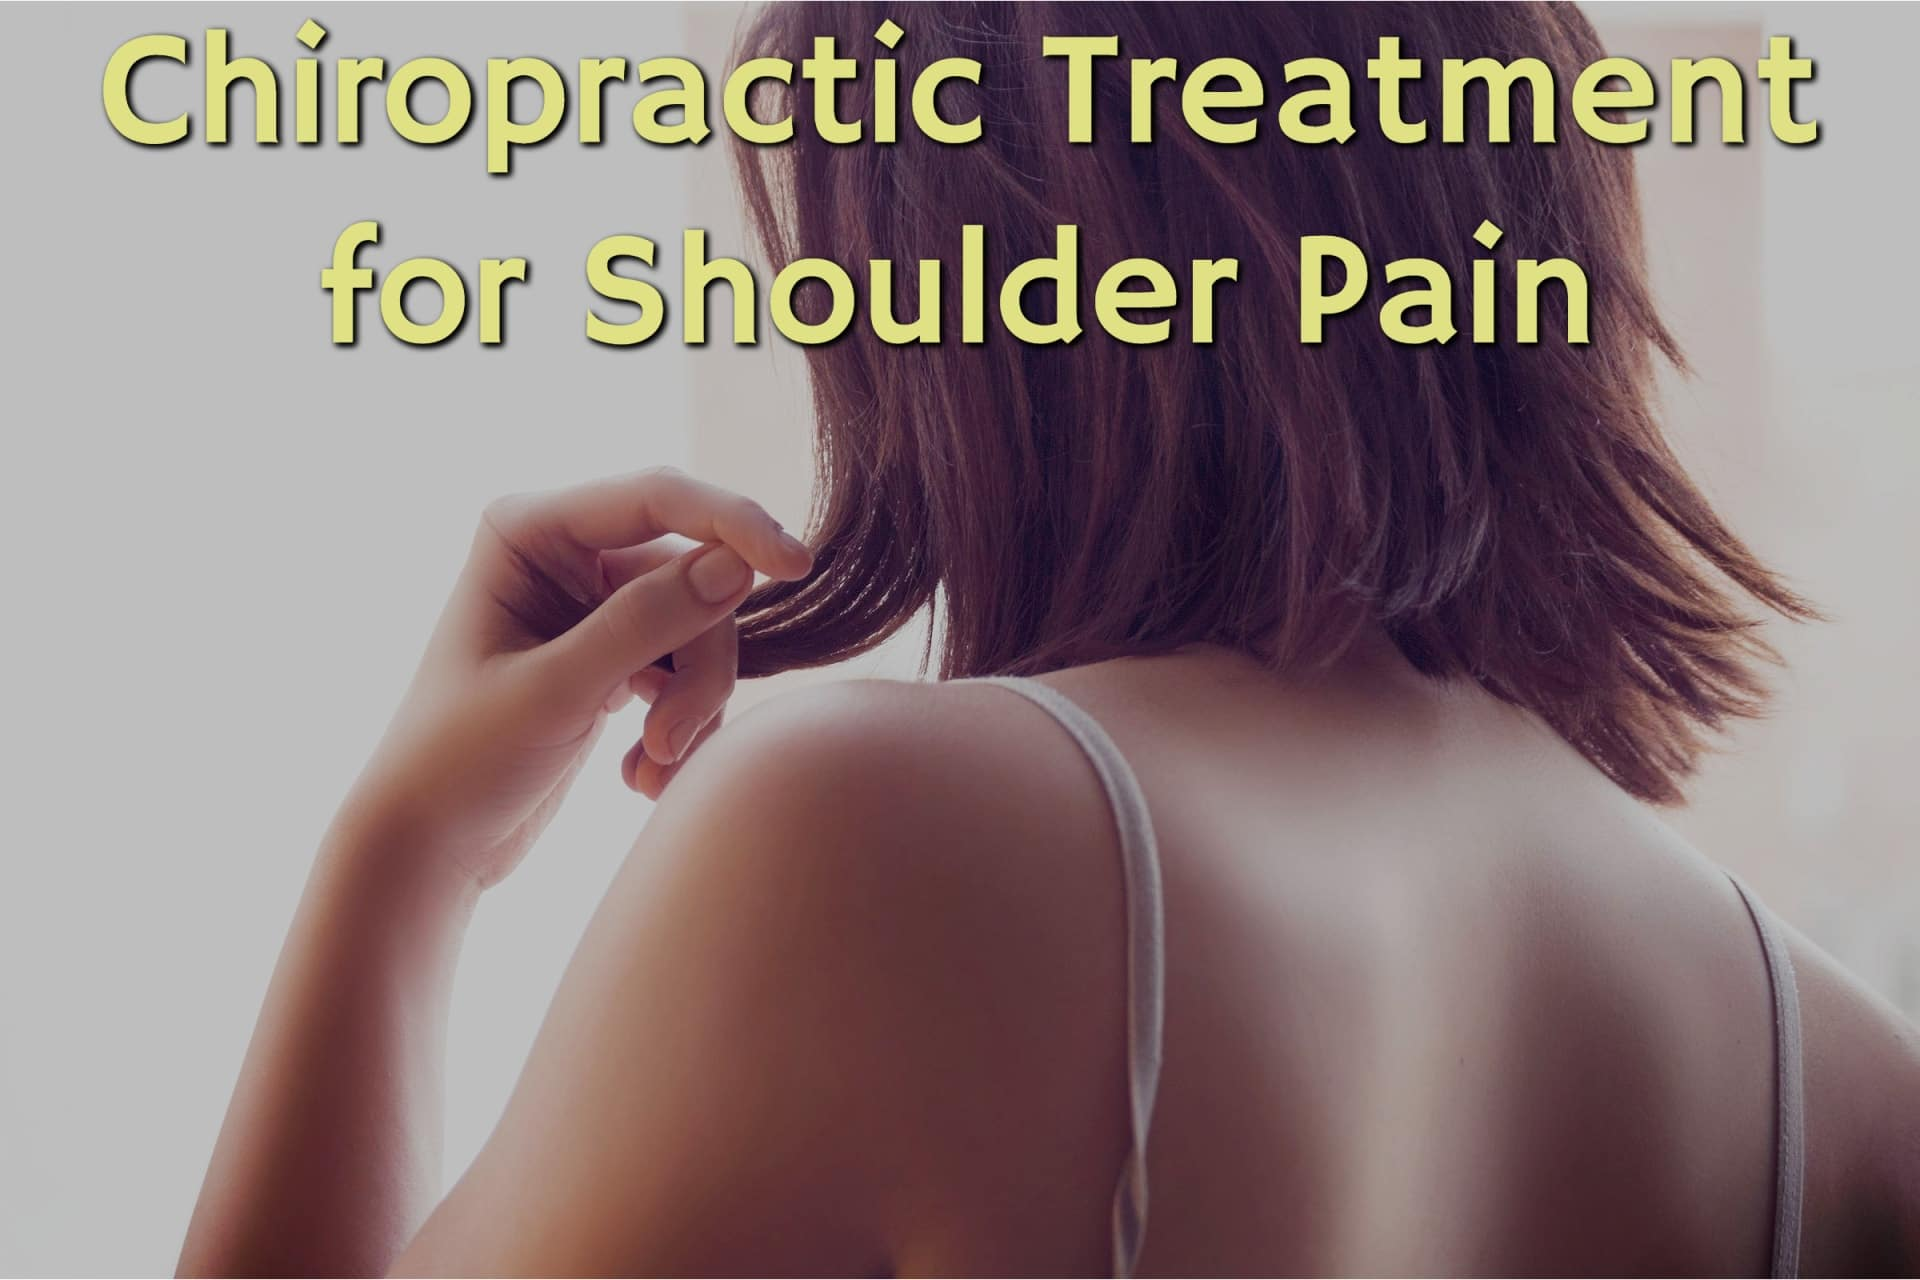 Do Chiropractors Help with Shoulder Pain?